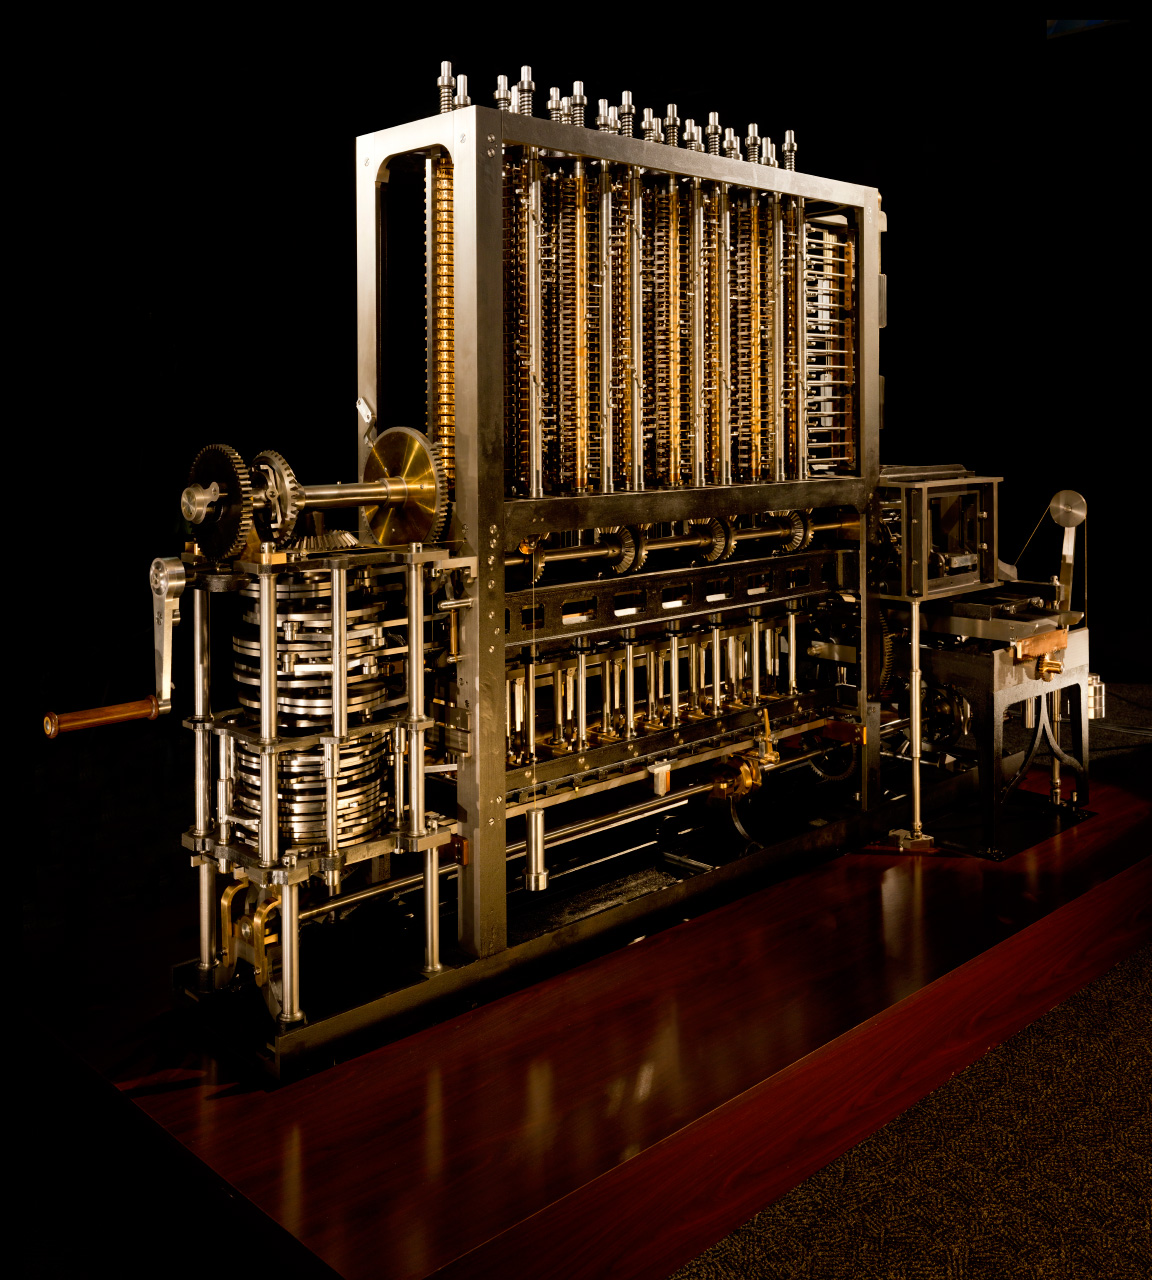 Computing - Wikipedia |The Difference Engine